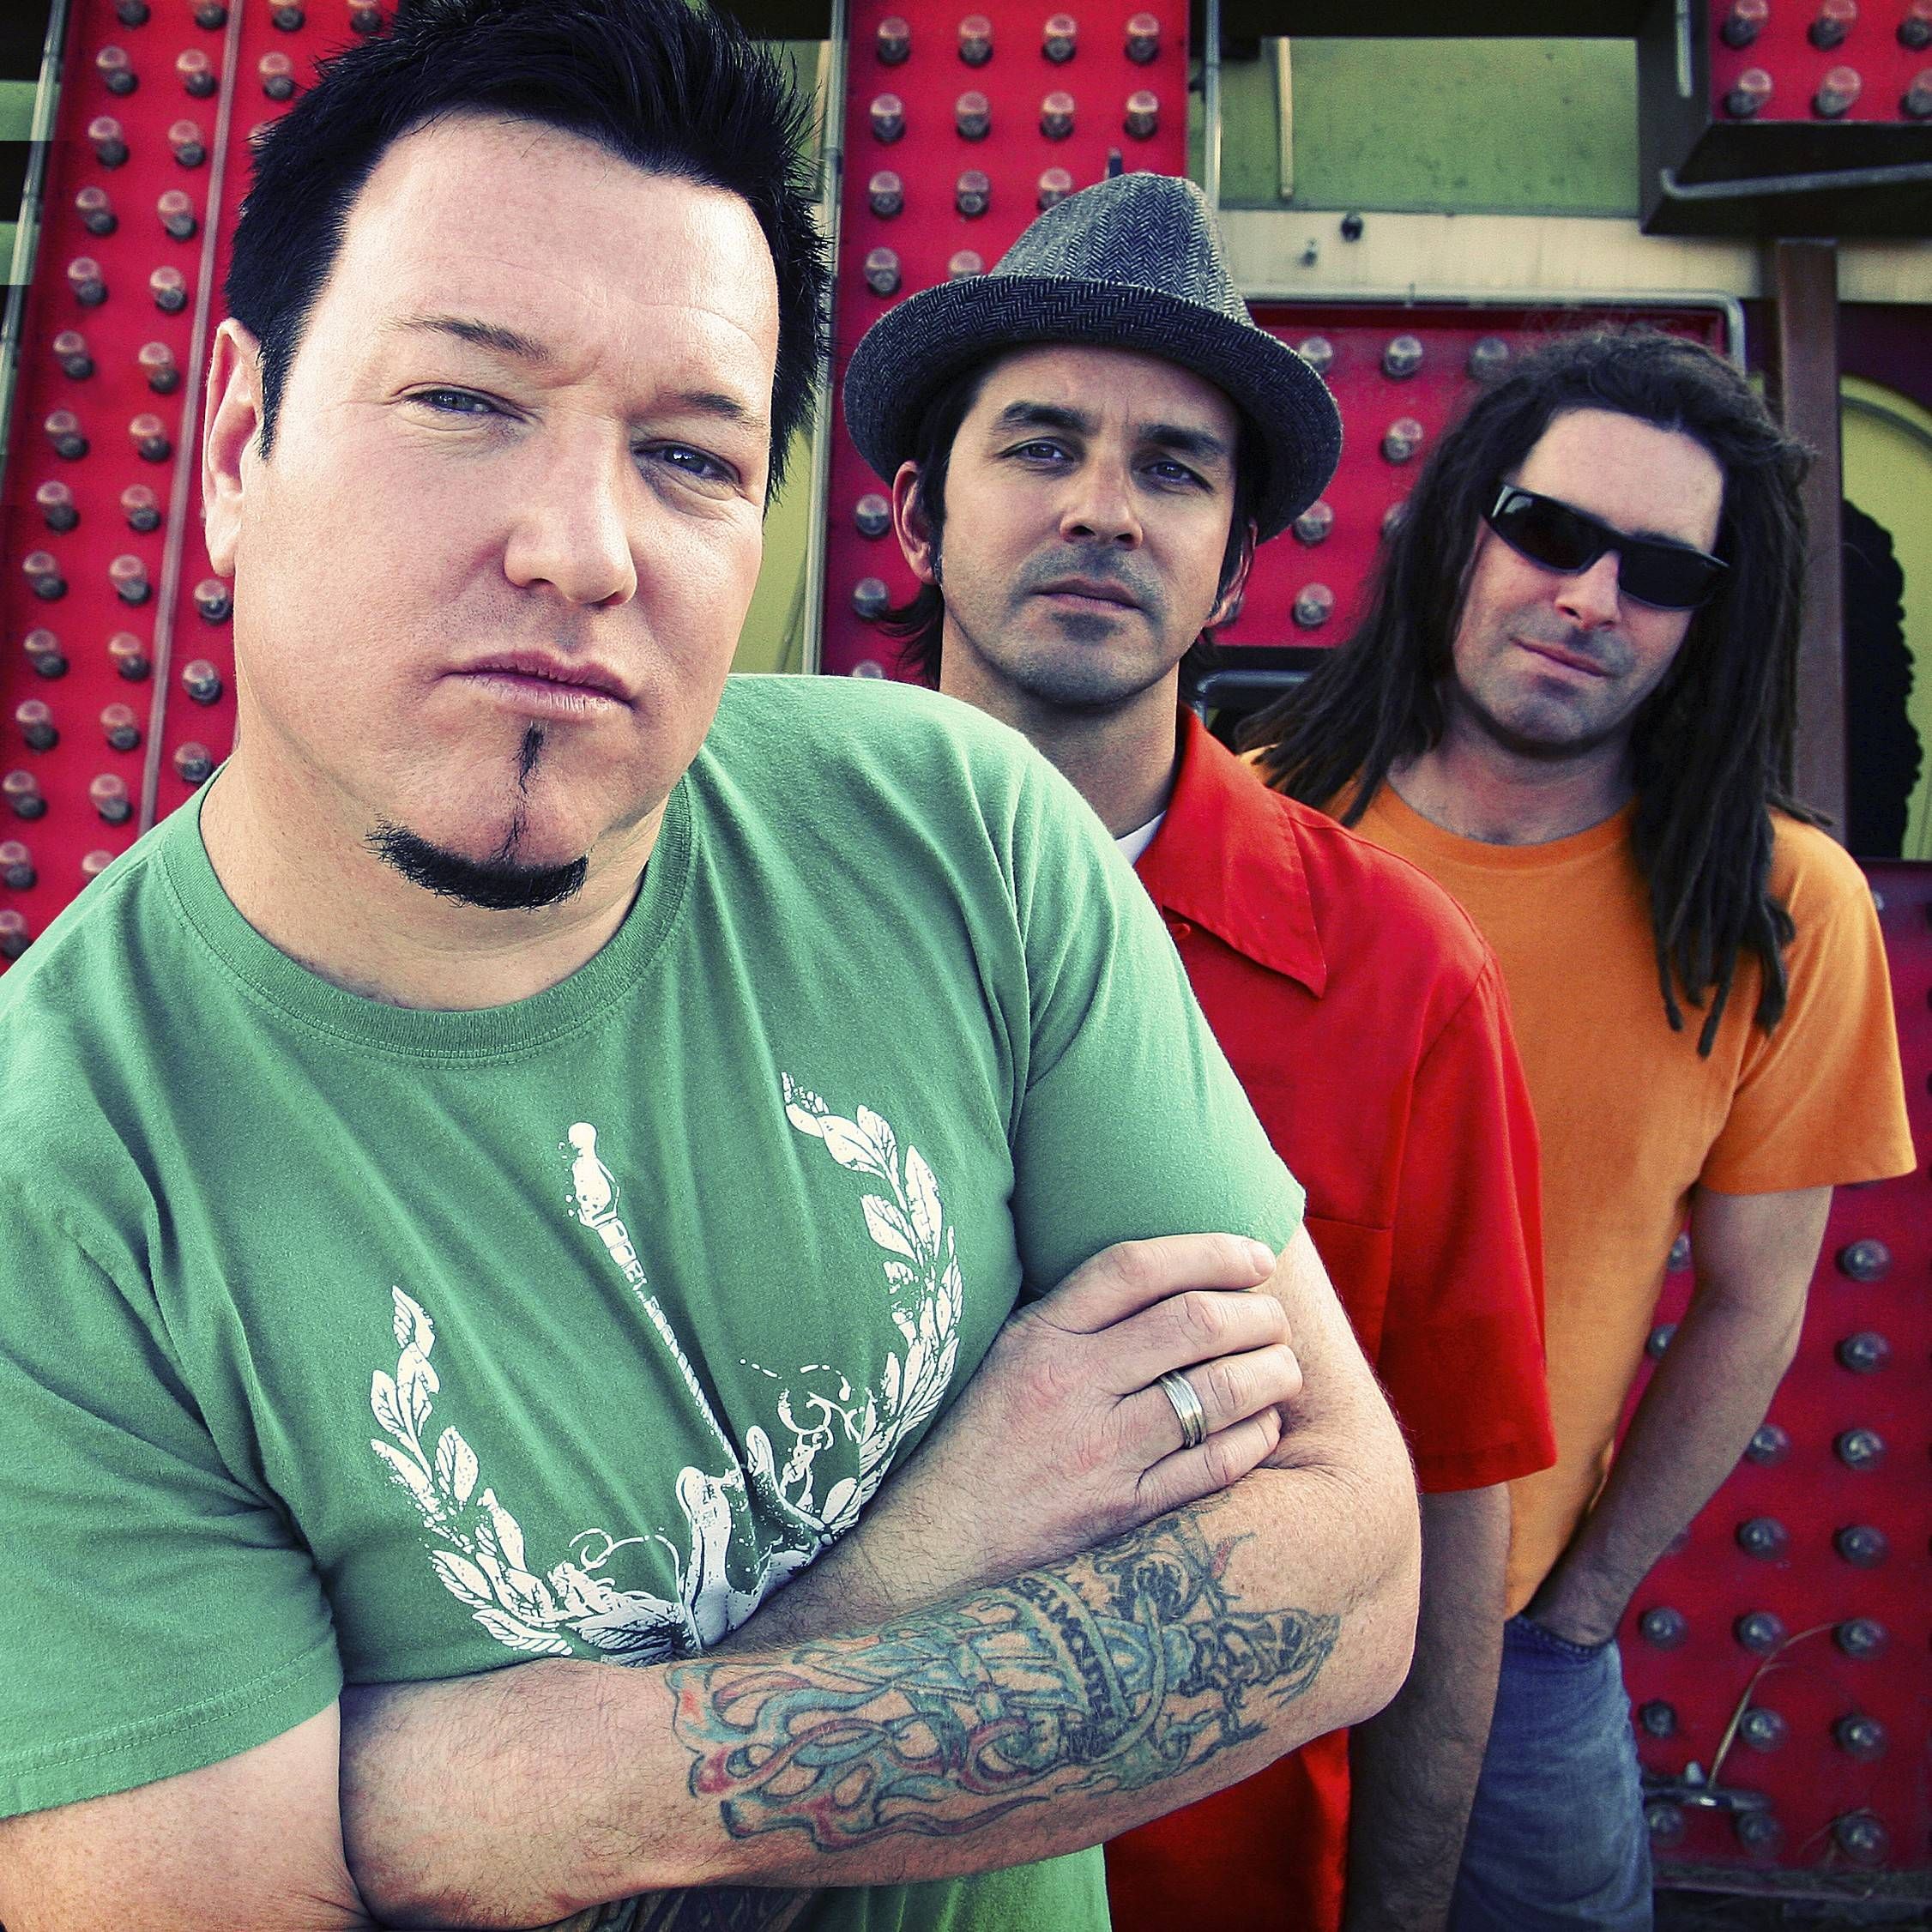 Smash Mouth will be the headliners at Northwest Fourth Fest, 8:30-10:30 p.m. on Saturday, July 5 at the Sears Centre in Hoffman Estates.